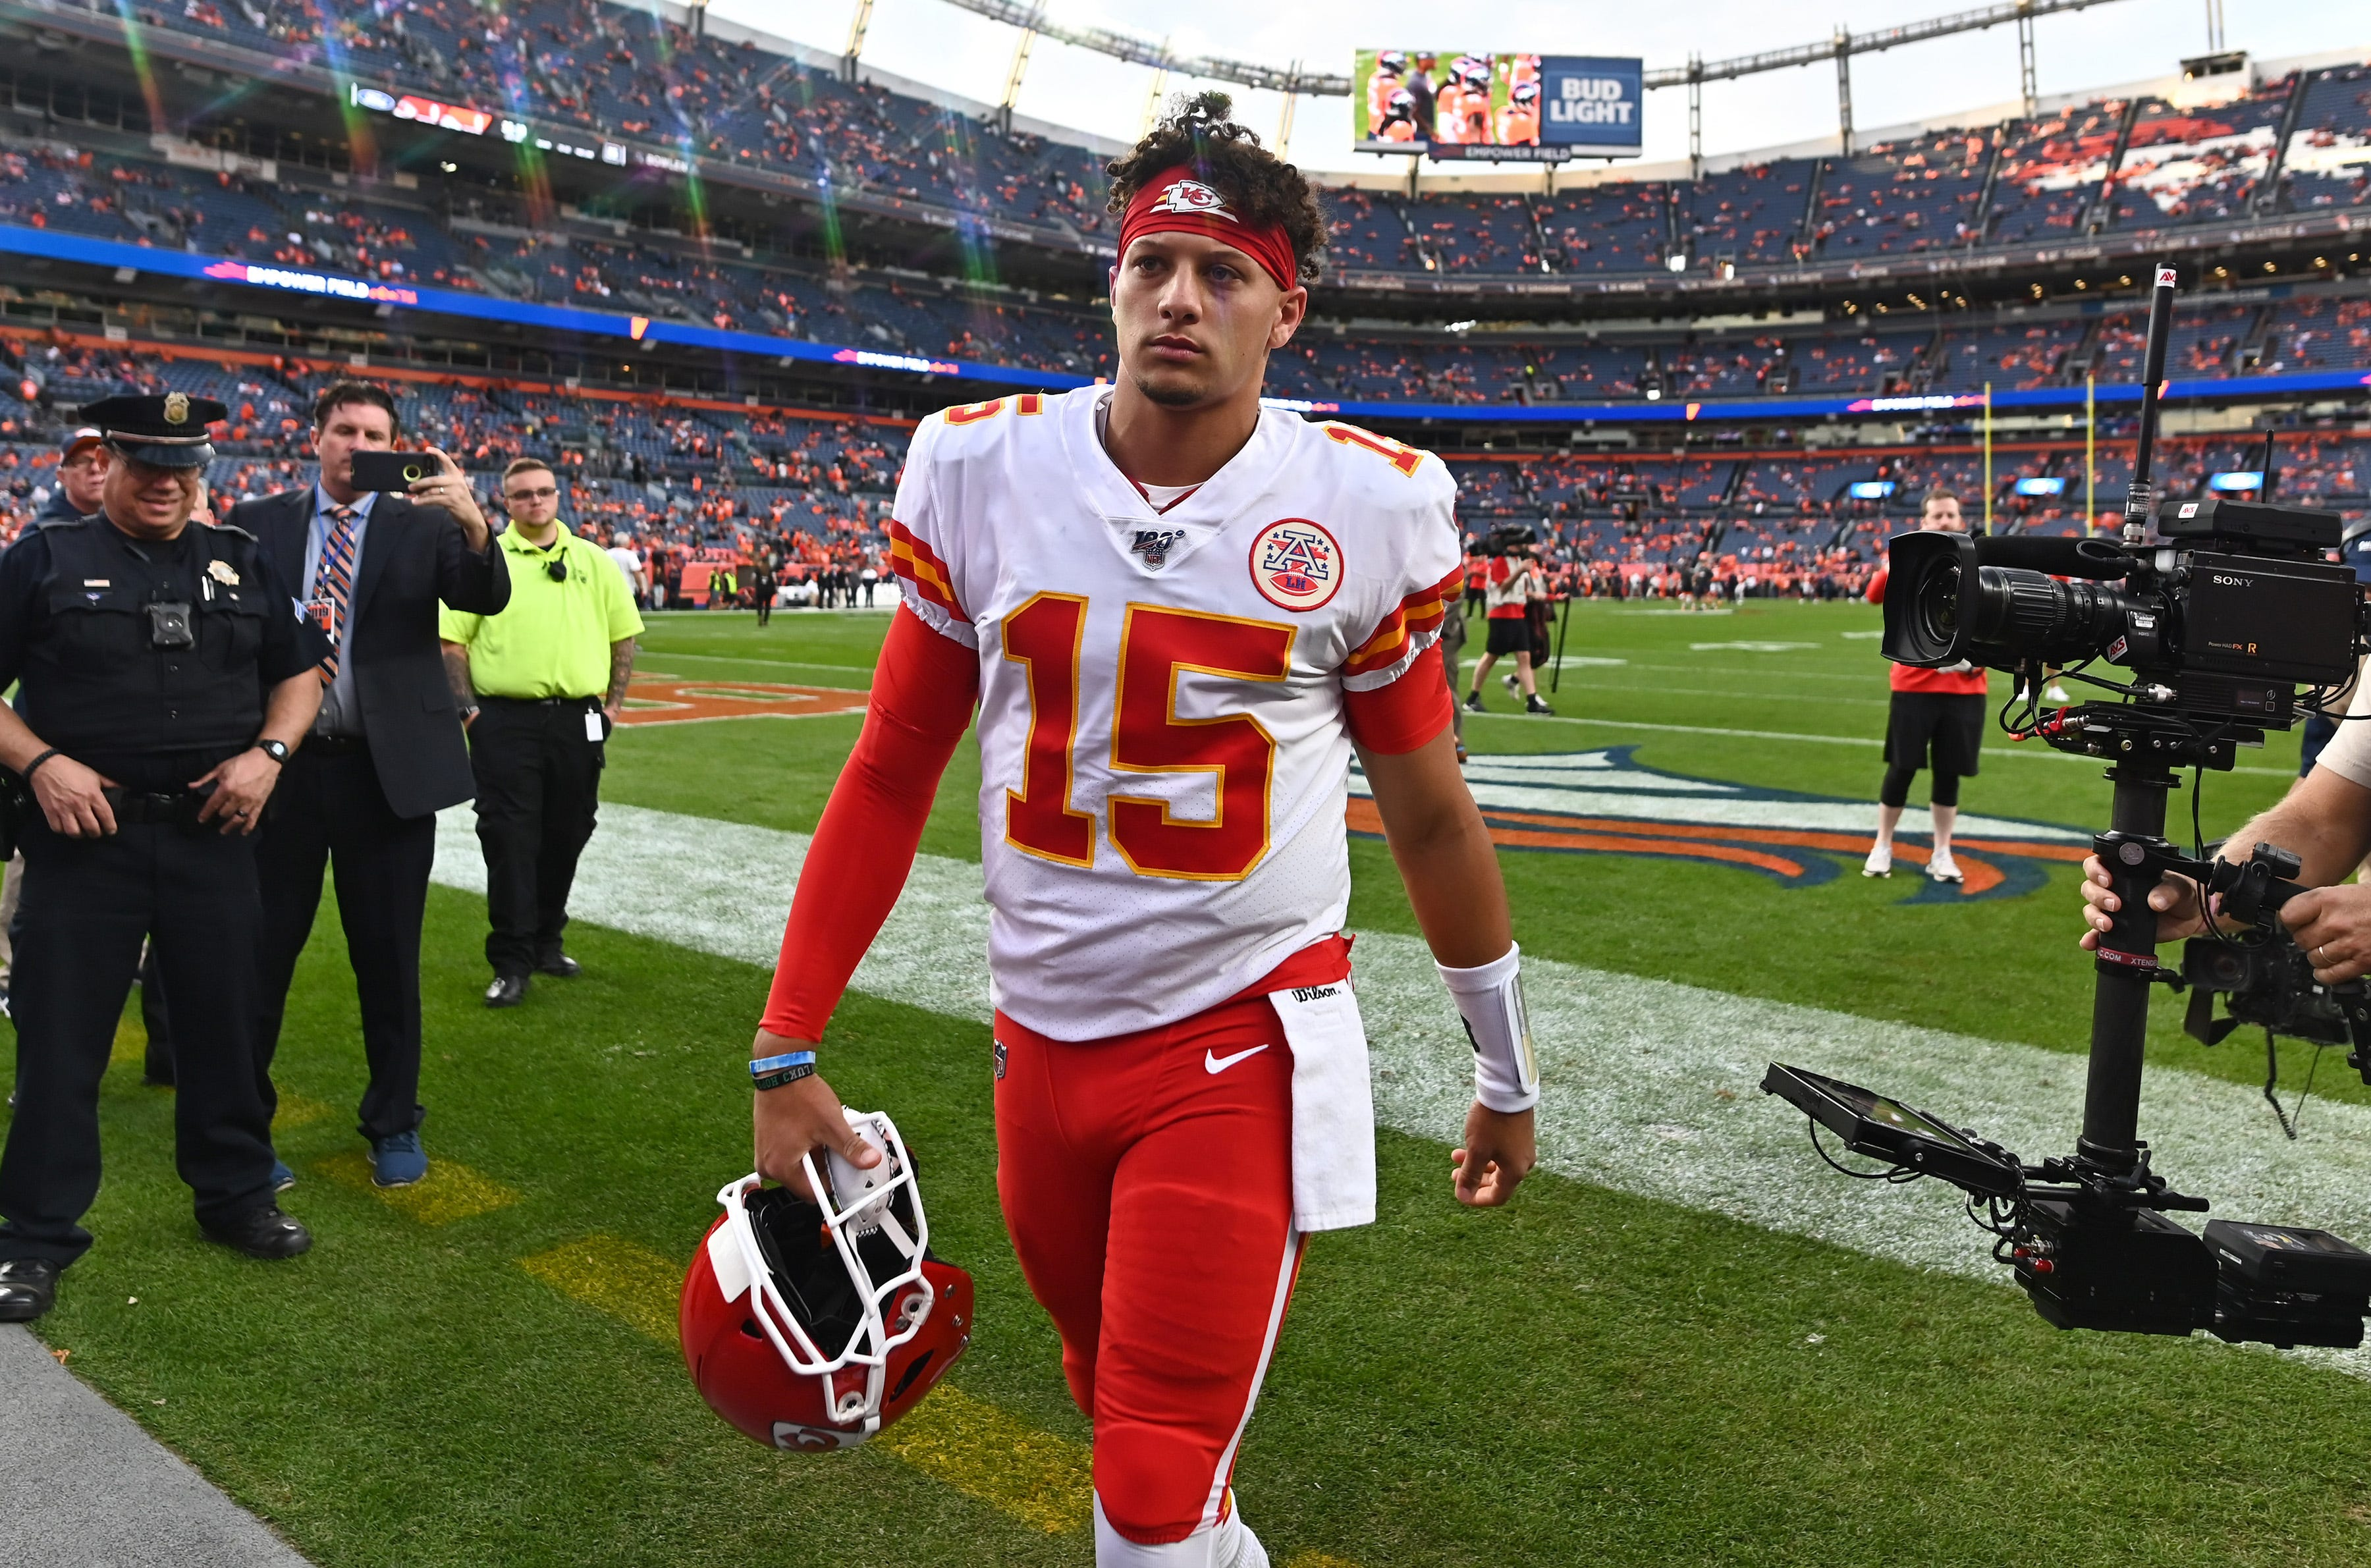 Reigning NFL MVP Patrick Mahomes suffers knee injury in Chiefs  game vs. Broncos